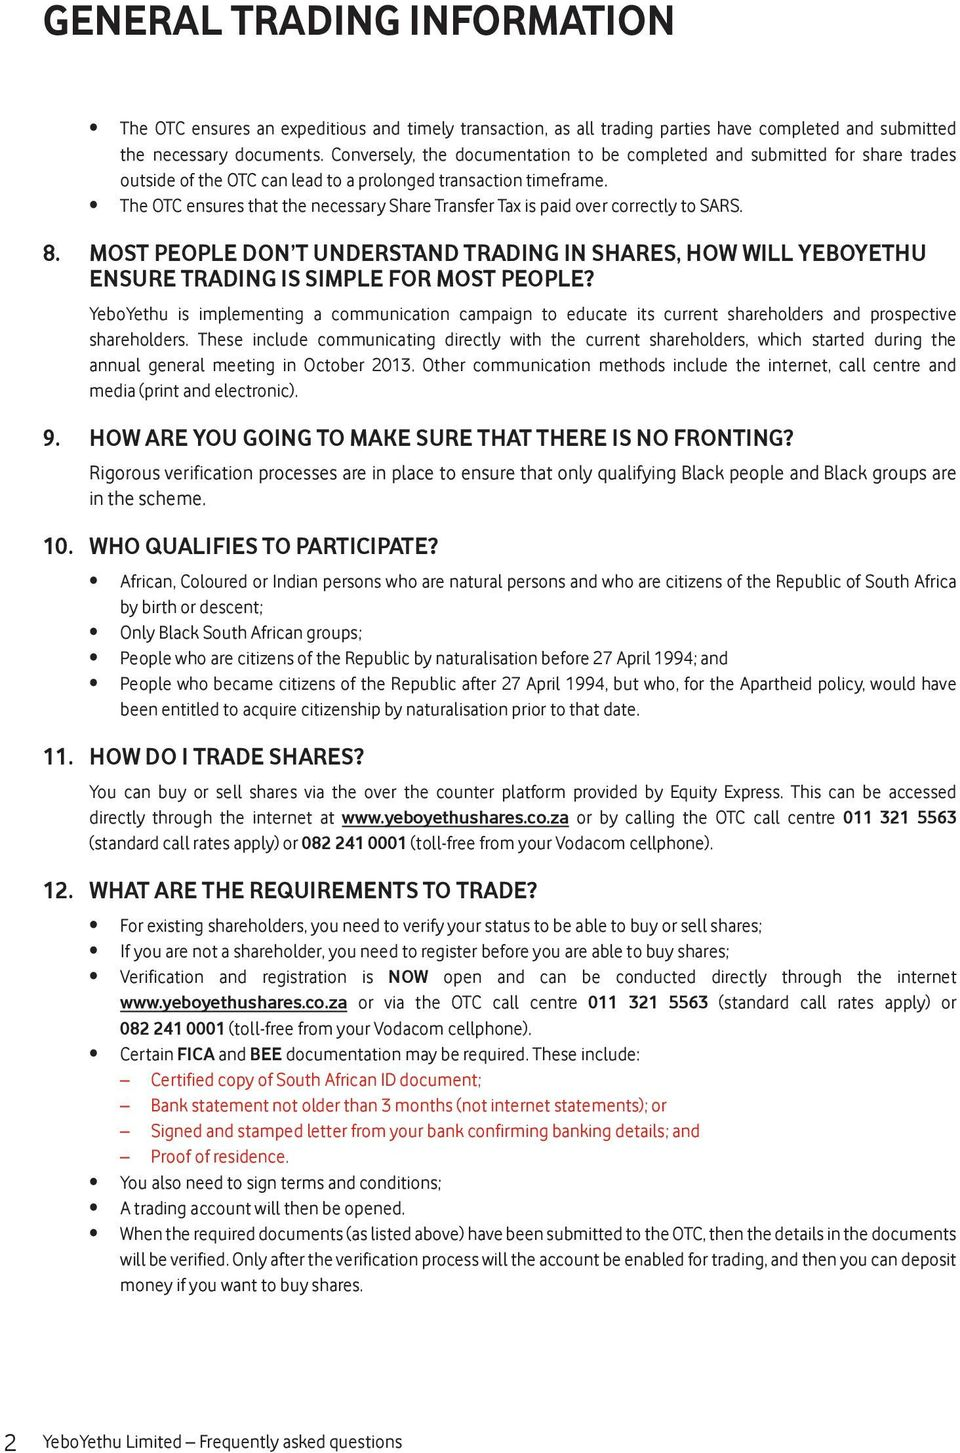 The OTC ensures that the necessary Share Transfer Tax is paid over correctly to SARS. 8. MOST PEOPLE DON T UNDERSTAND TRADING IN SHARES, HOW WILL YEBOYETHU ENSURE TRADING IS SIMPLE FOR MOST PEOPLE?